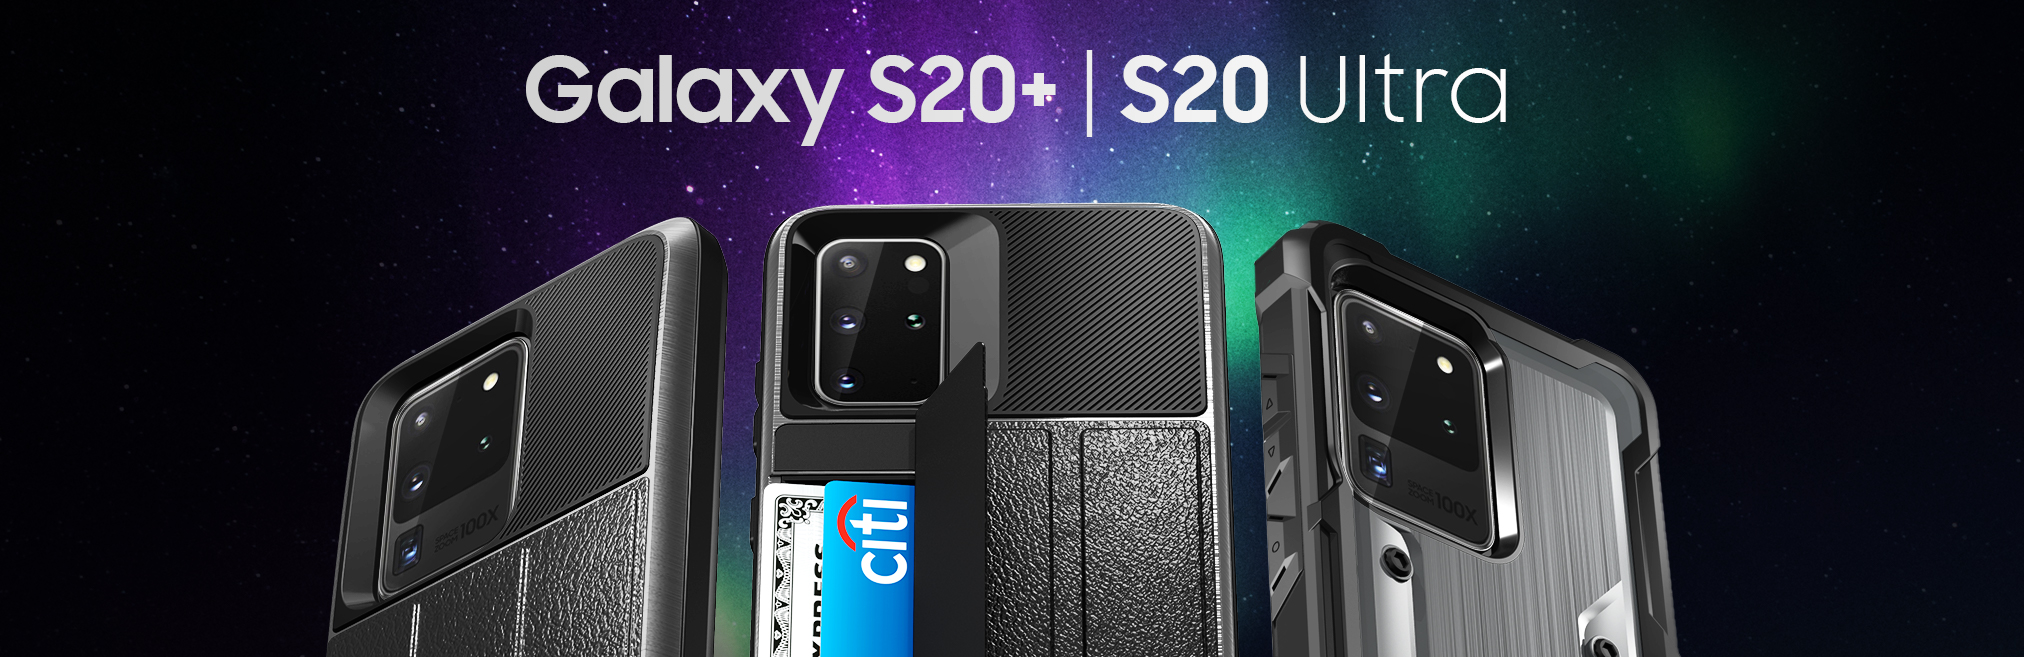 Galaxy S20 Plus and Galaxy S20 Ultra Cases